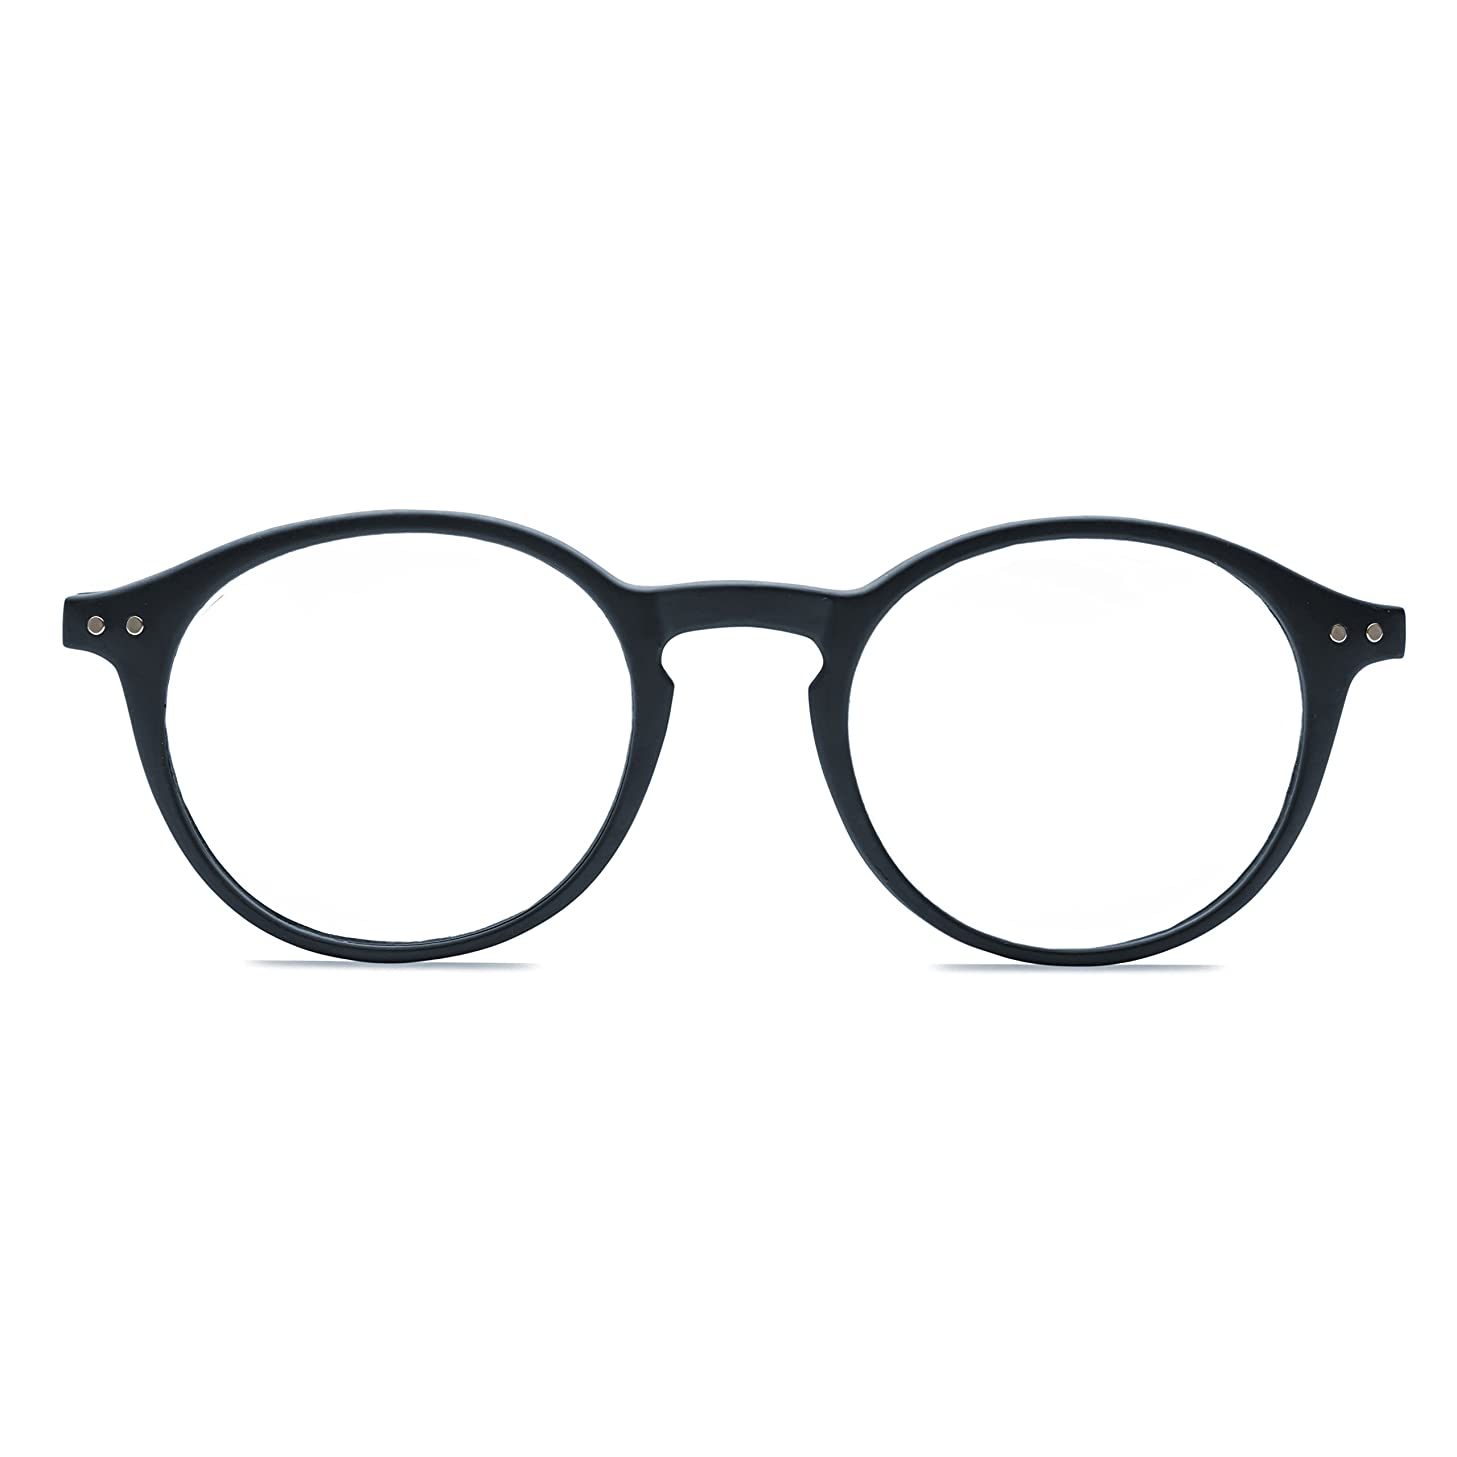 Blue Light Blocking Computer Glasses by WealthyShades-FDA Approved-Sleep Better, Reduce Eyestrain & Fatigue When Gaming, Tablet/Phone Reading, TV | an